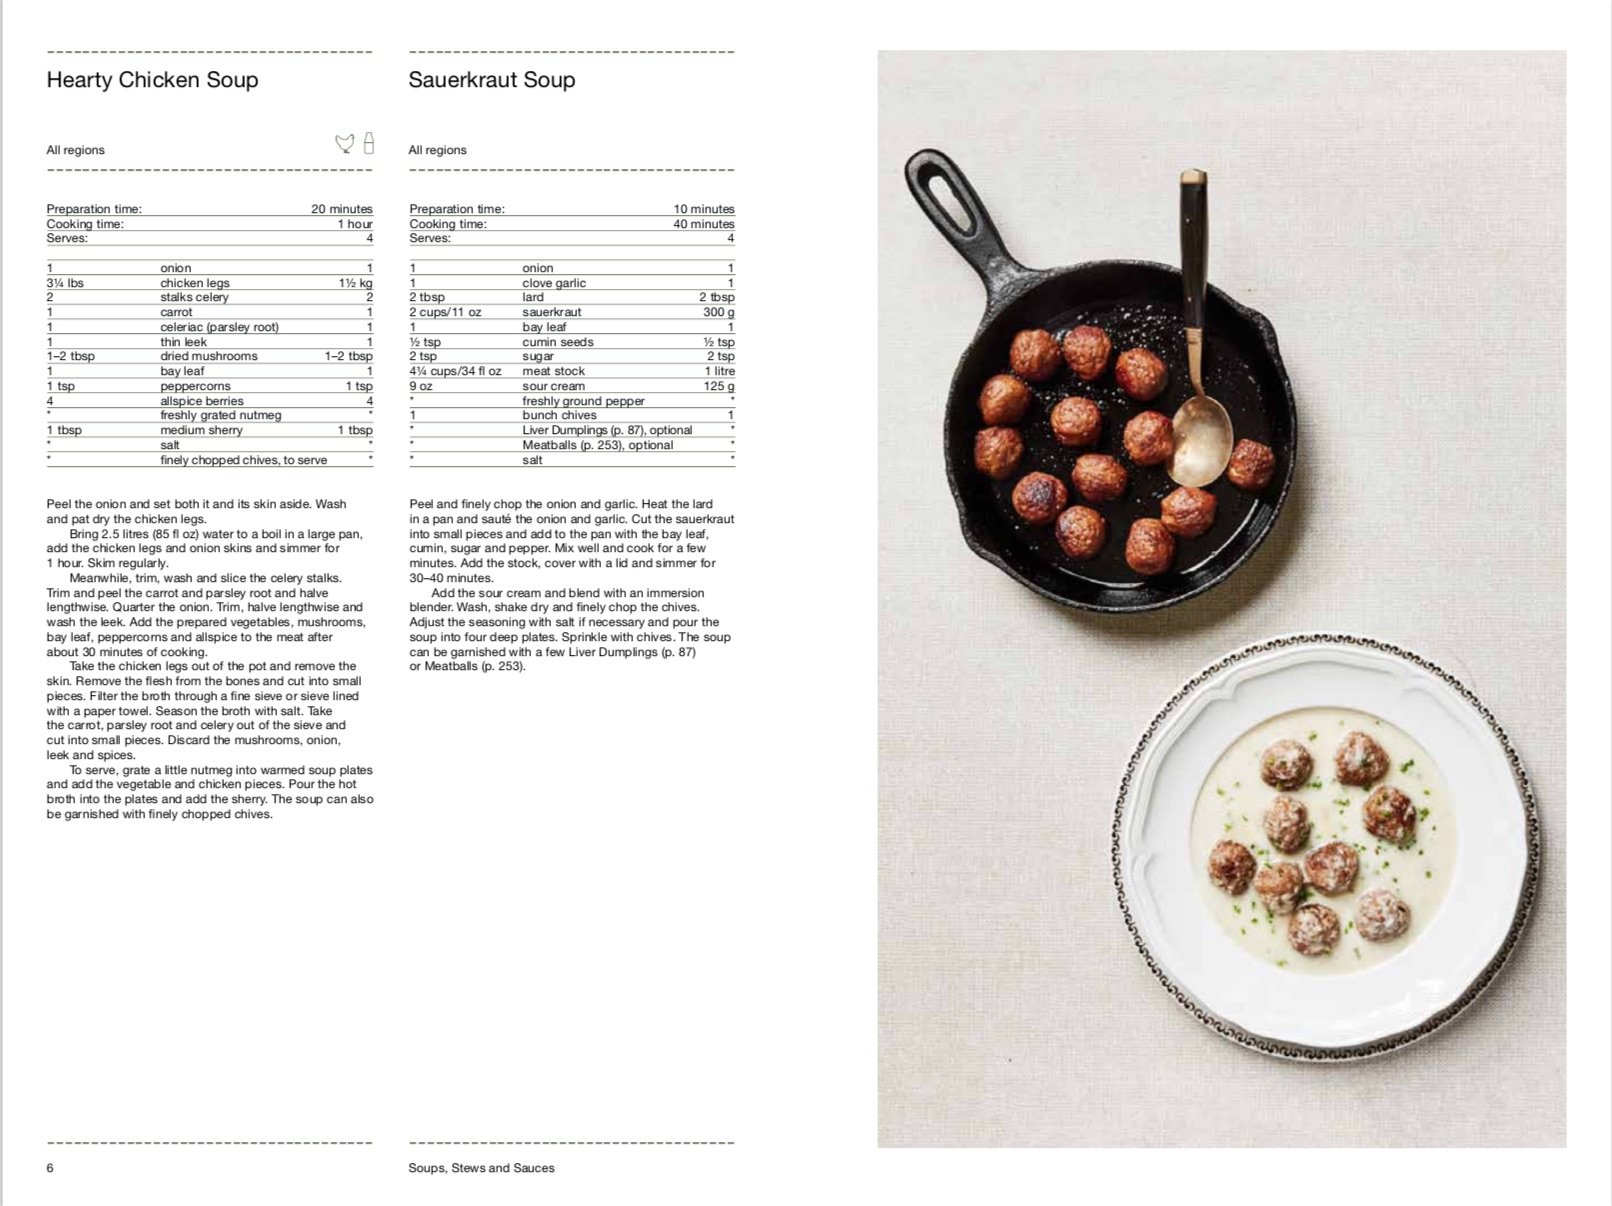 By Alfons Schuhbeck from The German Cookbook copyright Phaidon 2018